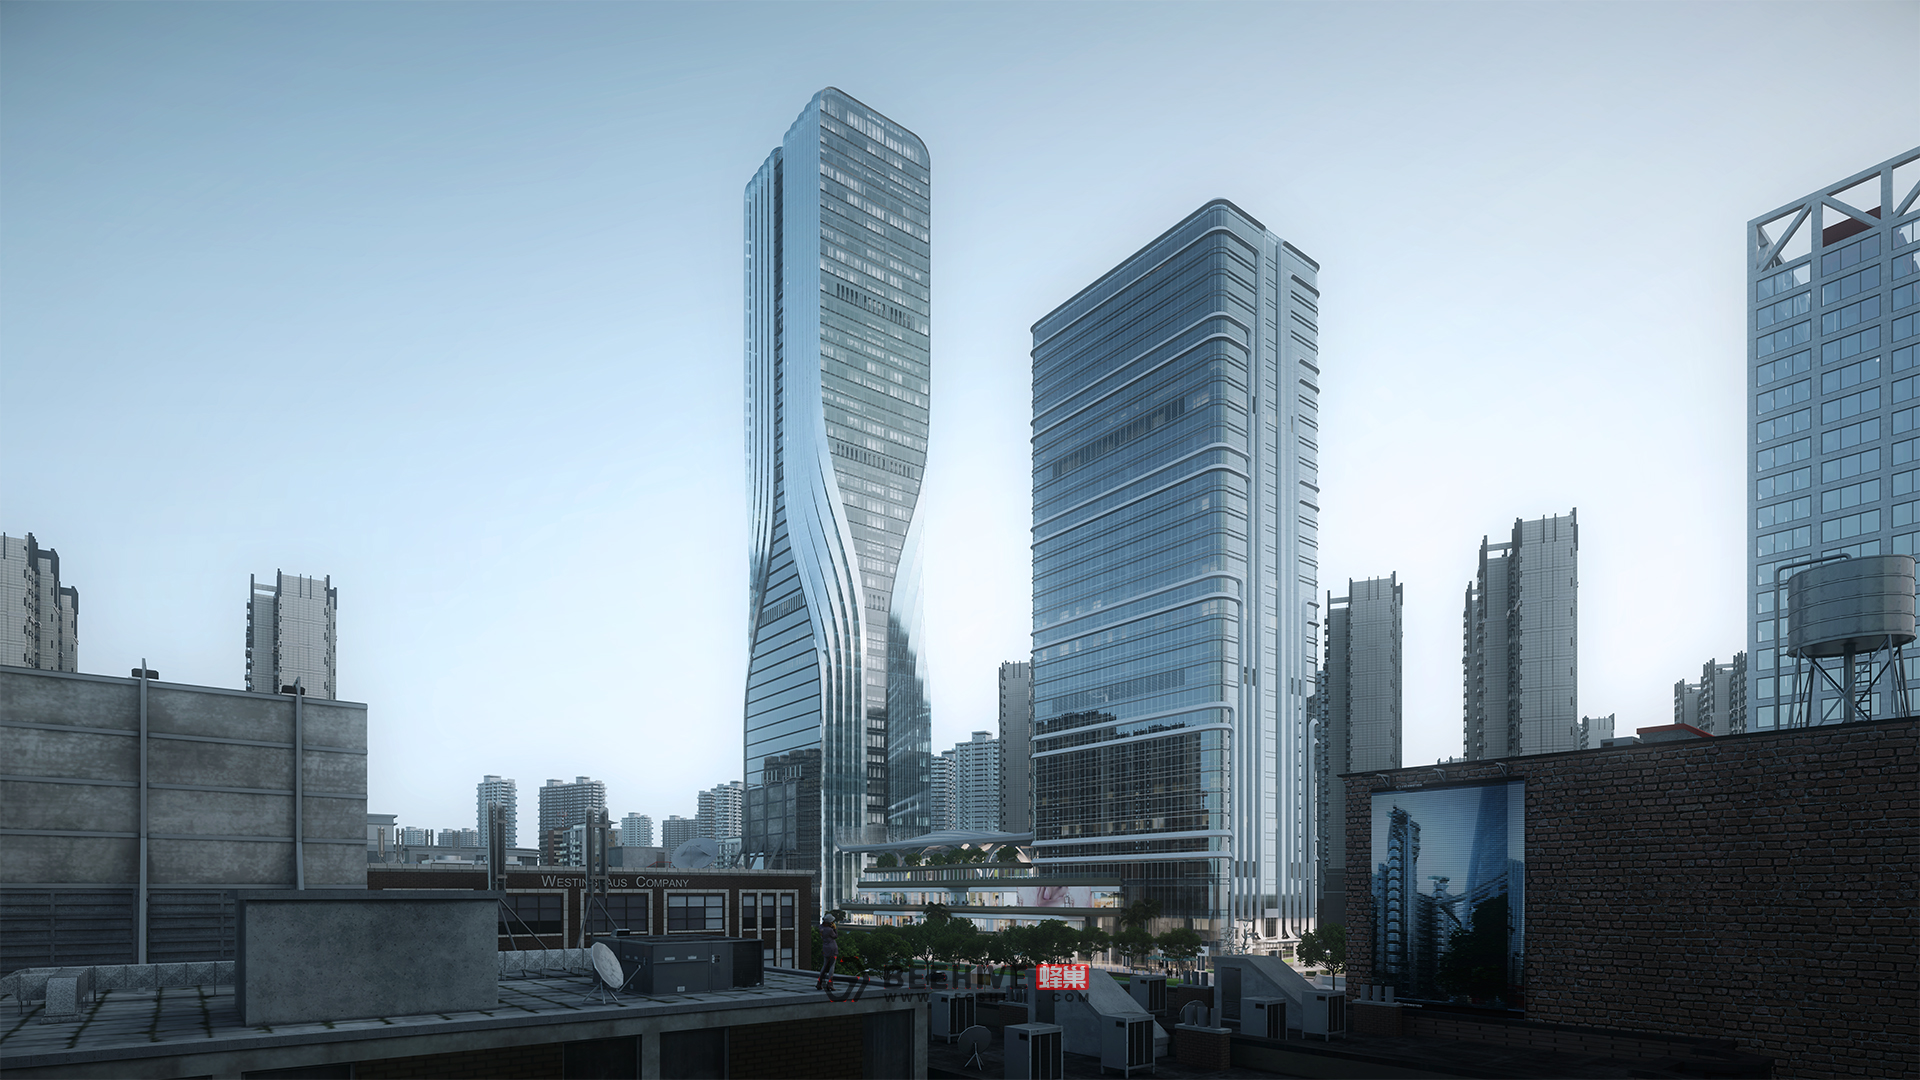 Wuhan Founder International Financial Center. Design and Project Architect: Aedas. Client: PKU Resources.